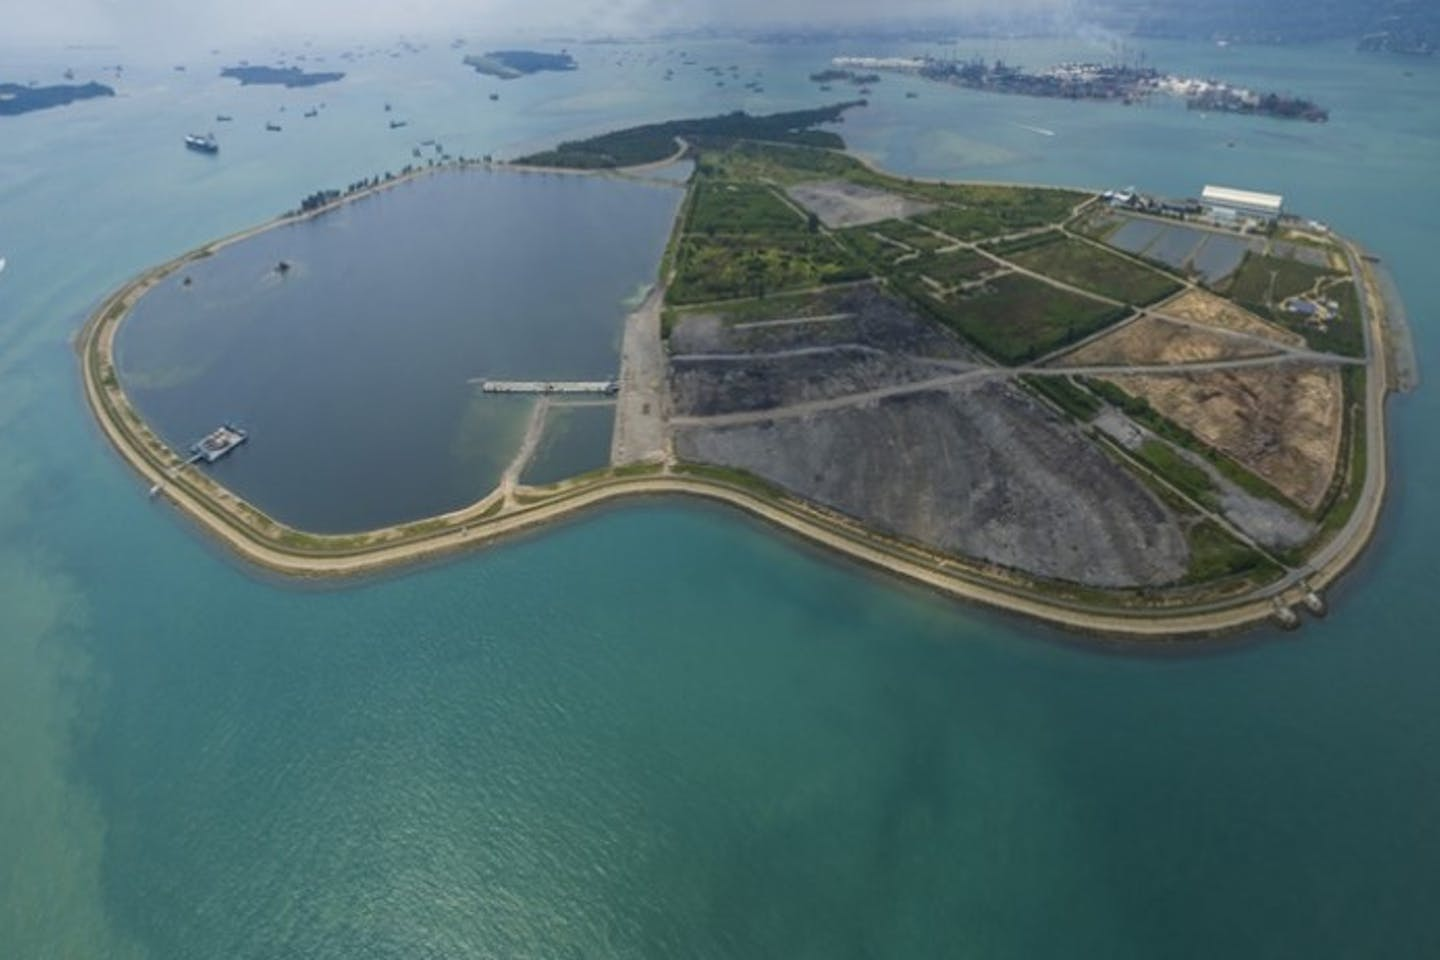 Singapore's only landfill, the purpose-built trash island of Semakau